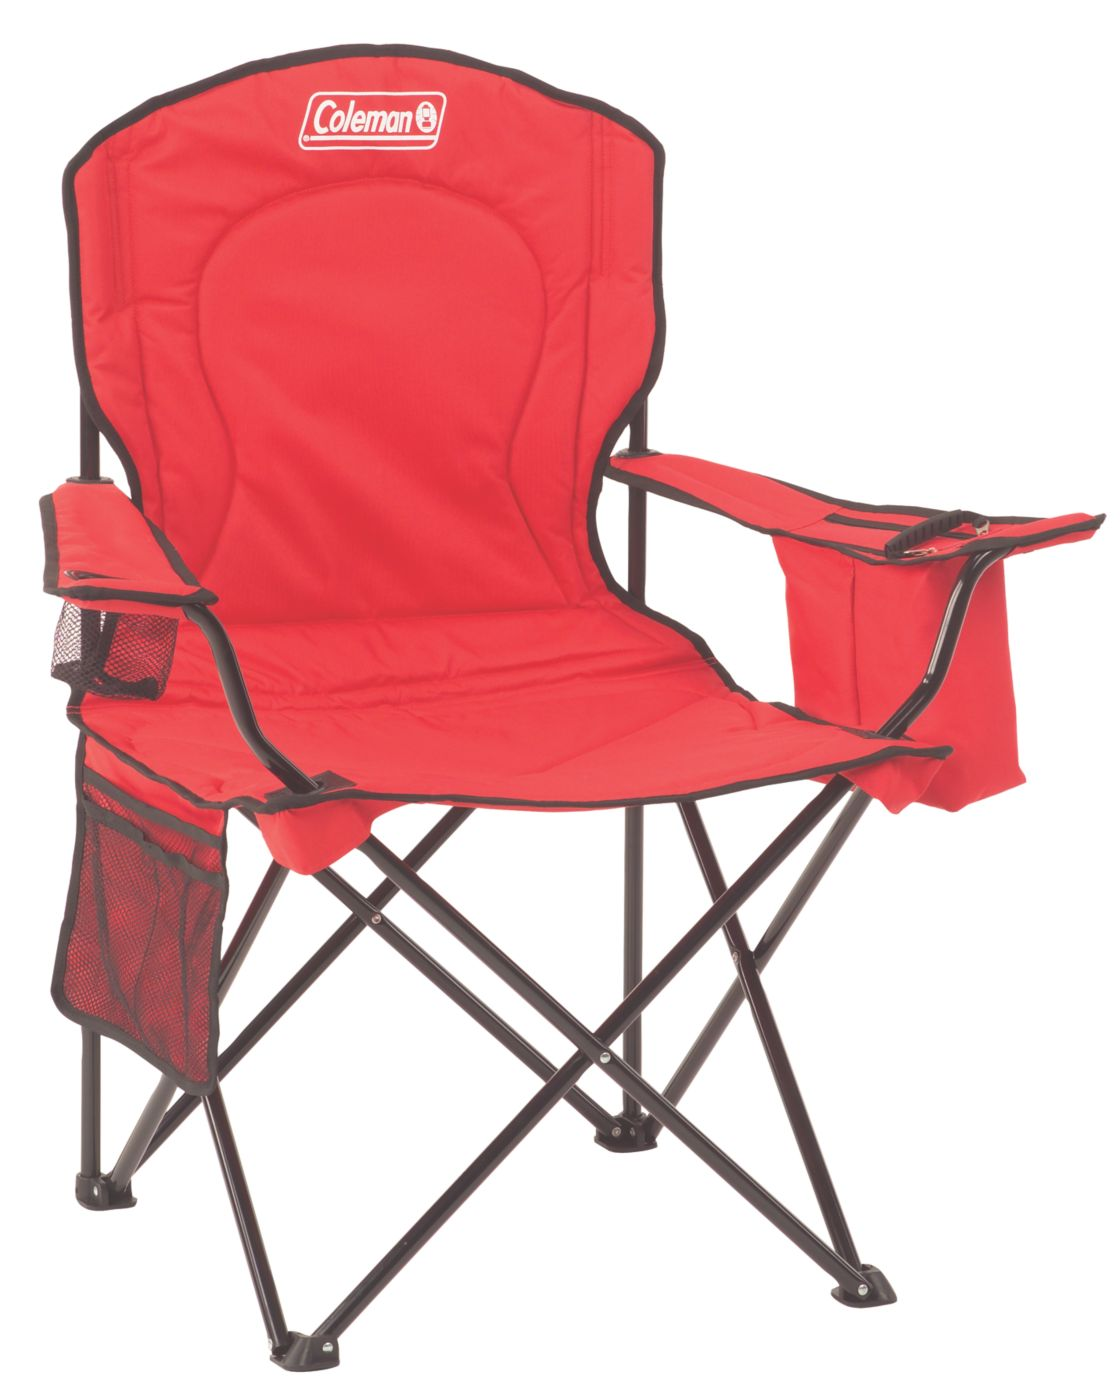 Double Camping Chair Camping Folding Chairs Coleman